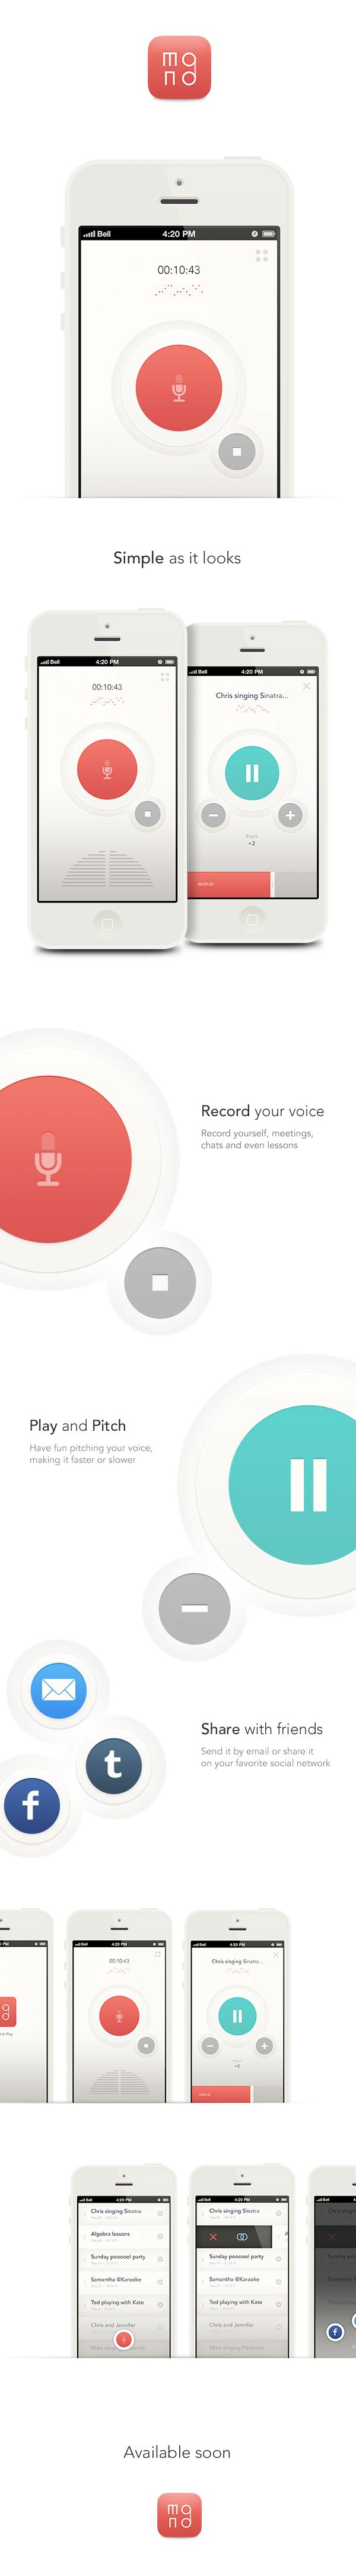 Record everything you want, have fun and share all your sounds on your favorite social networks...all in a minimally designed app.-www.monorecorder.com